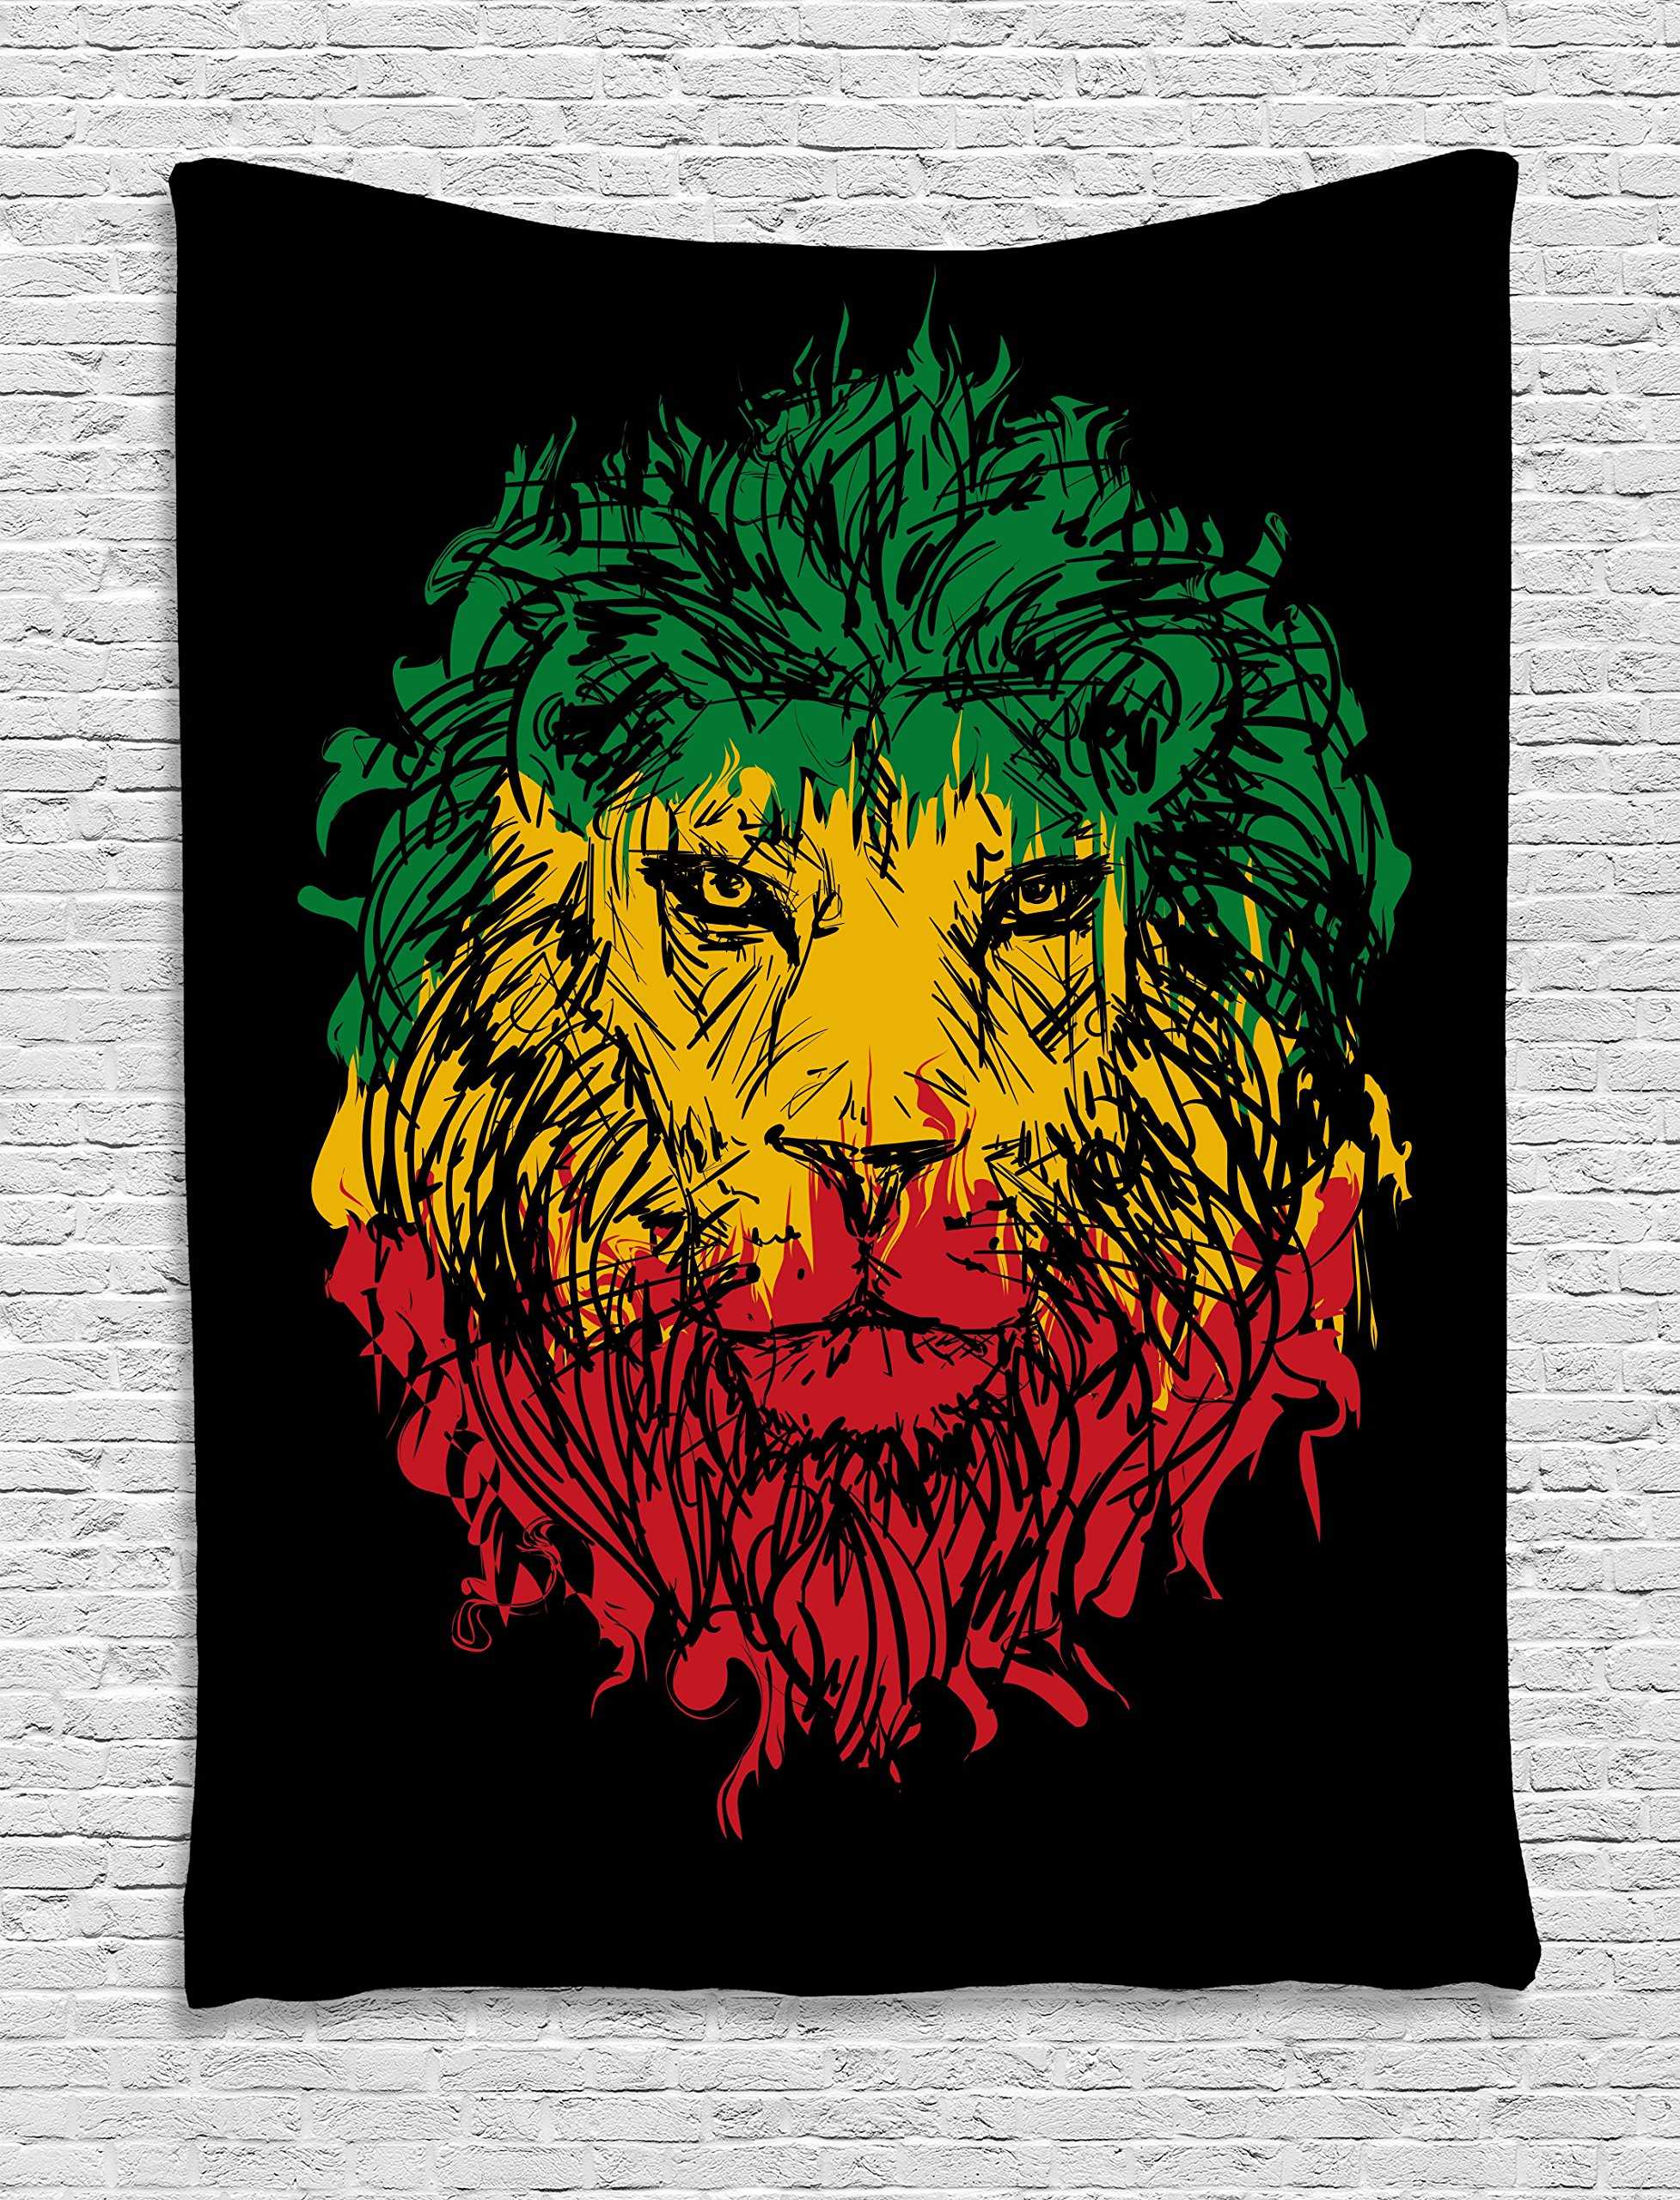 Ambesonne Rasta Tapestry, Ethiopian Flag Colors on Grunge Sketchy Lion Head with Black Backdrop, Wall Hanging for Bedroom Living Room Dorm, 60 W X 80 L Inches, Light Green and Yellow